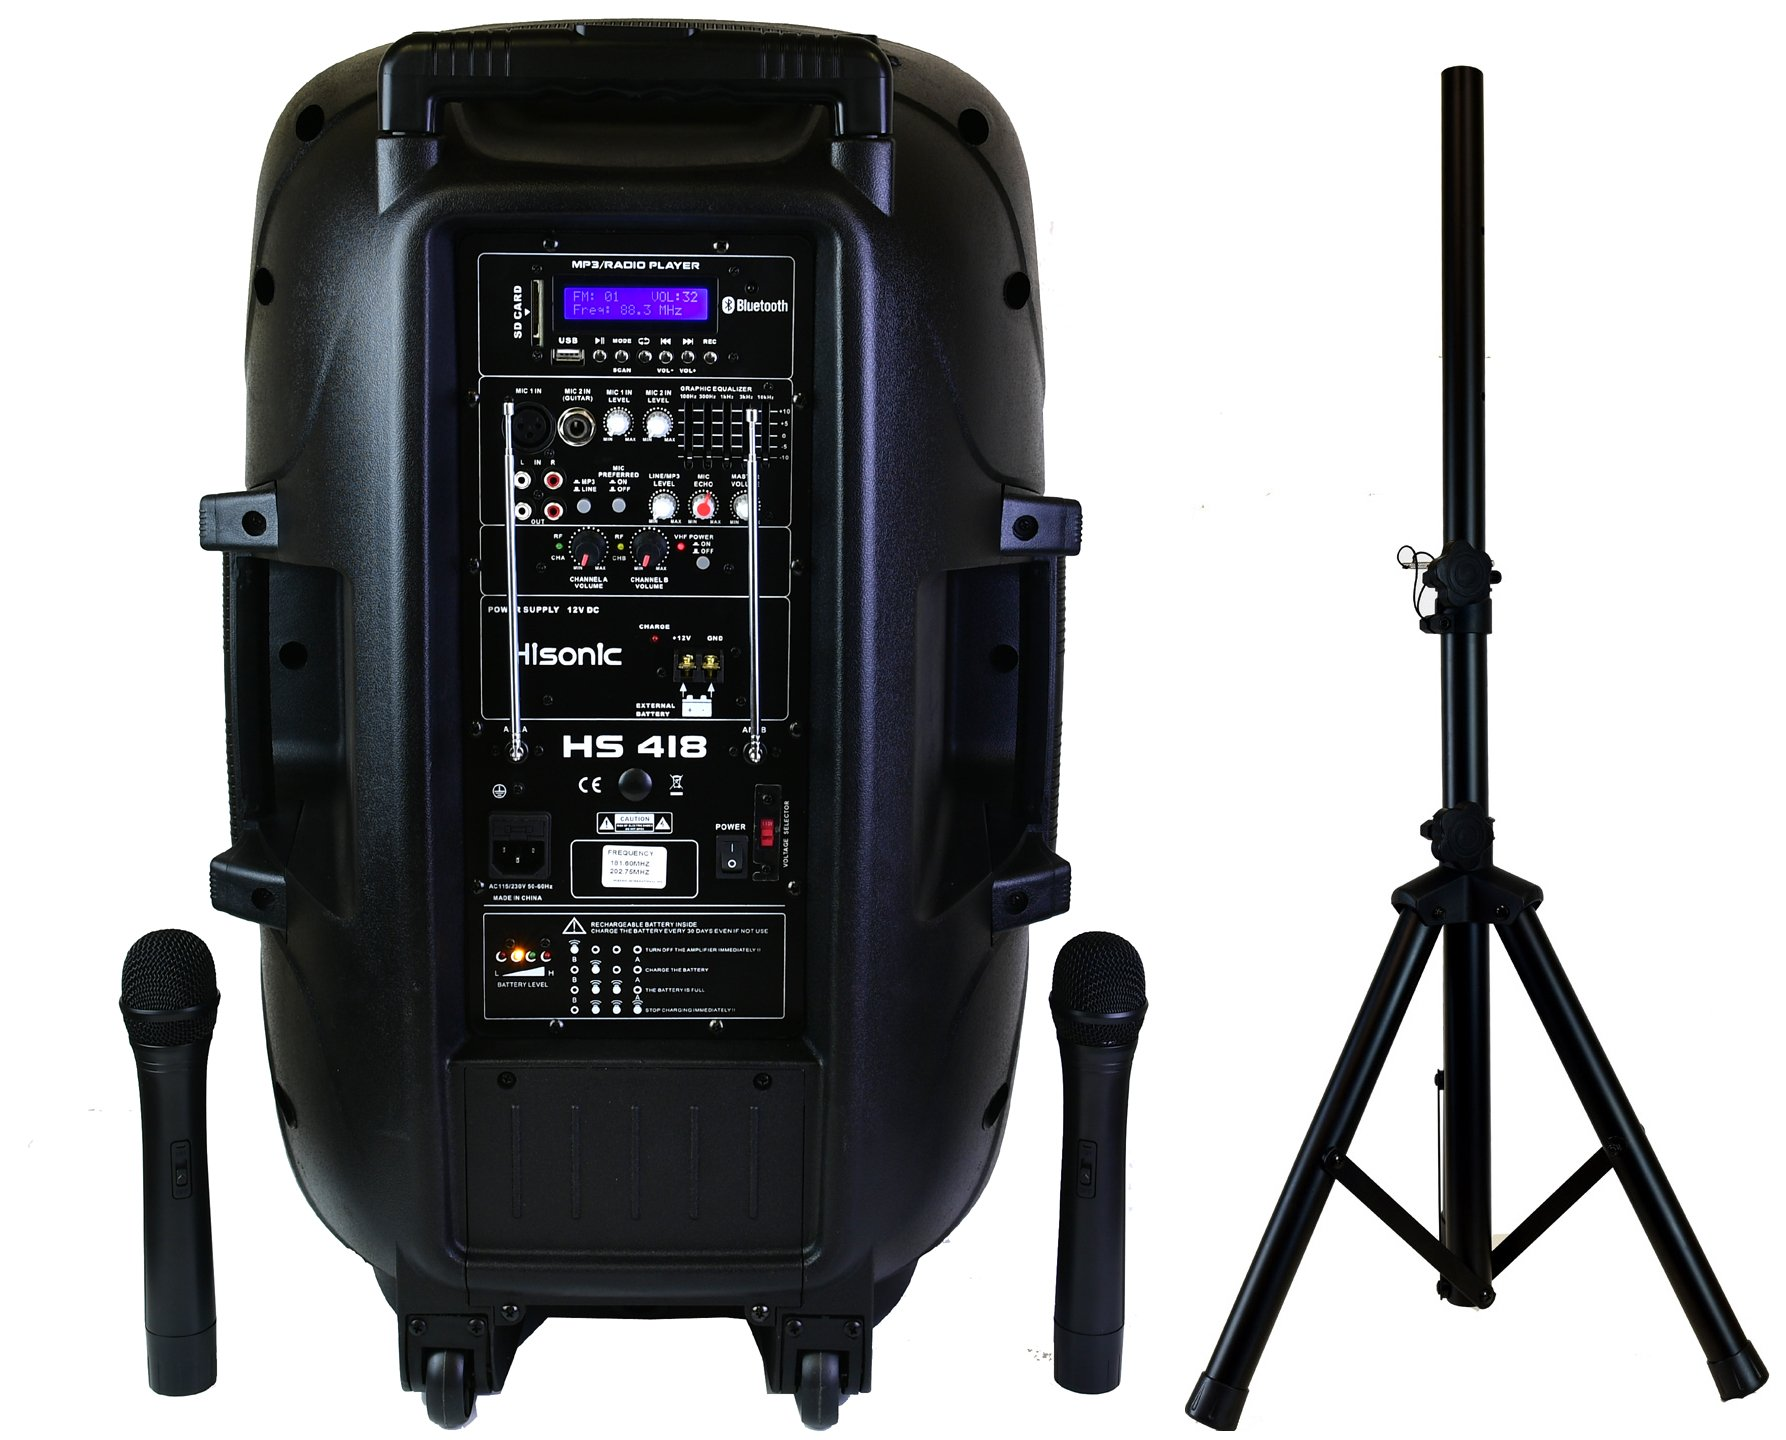 Hisonic HS418 450 True Watts 15'' Full Response Speaker + 2'' Tweeter and Wireless Rechargeable & Portable PA System with Built-in Dual VHF Wireless Microphones, Bluetooth and Music Player, Two Section Strong 48'' High Tripod and Remote Control Included, wit